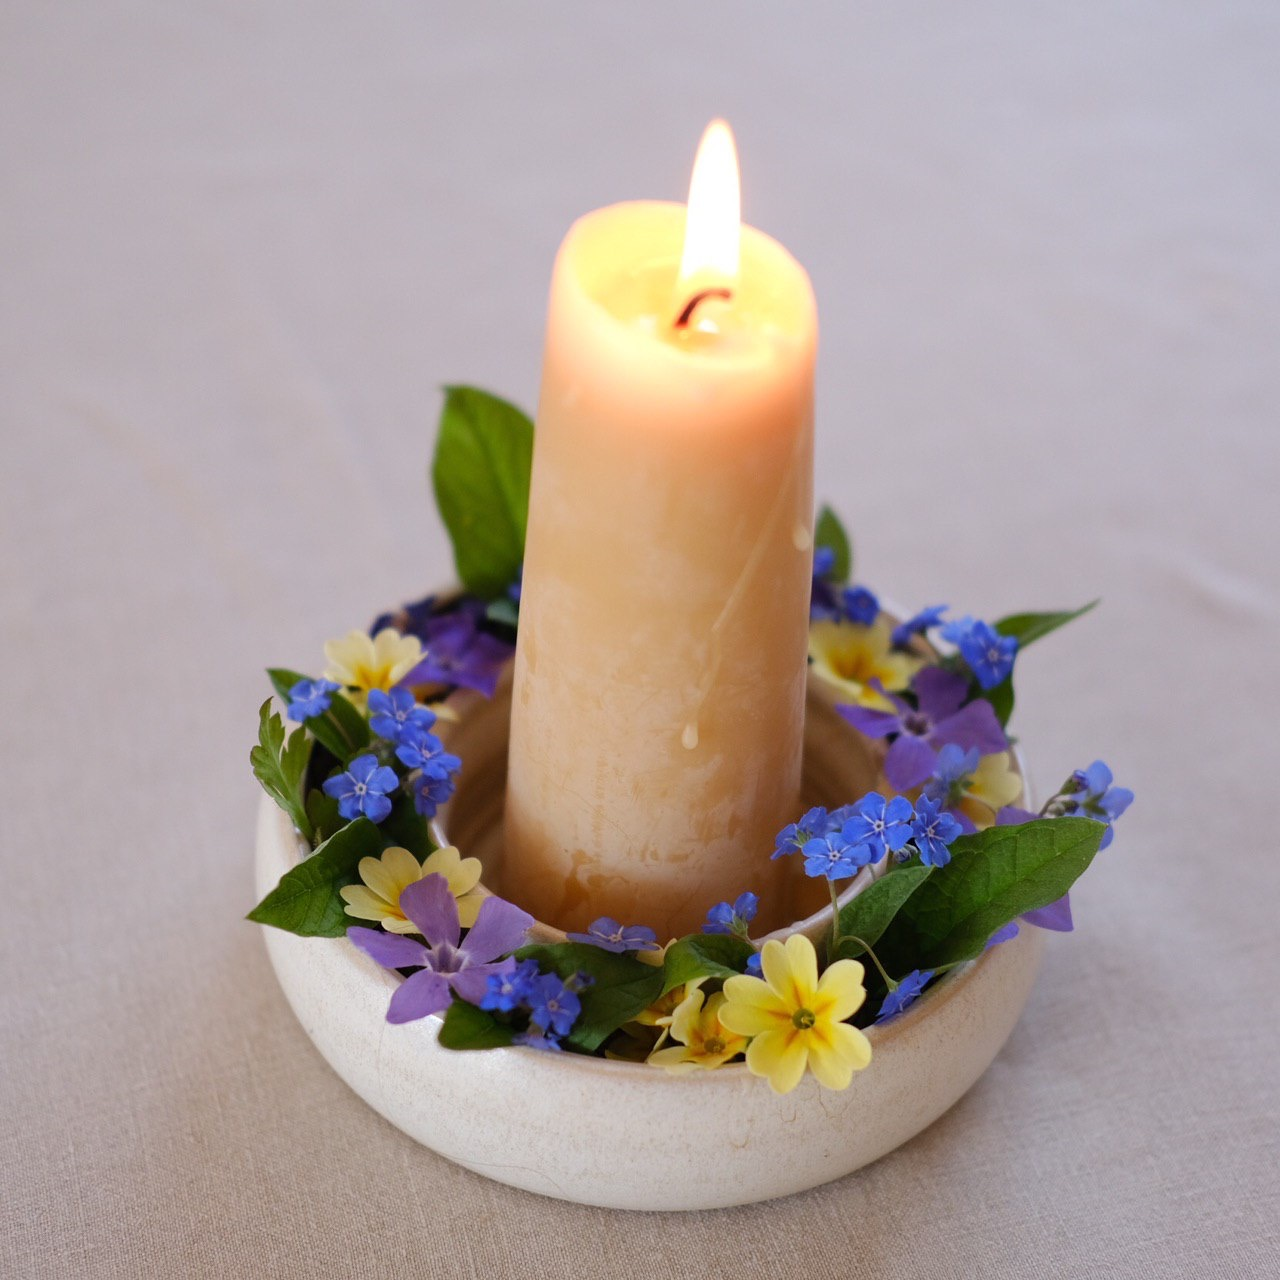 Ceramic Flower Ring with Candle Base